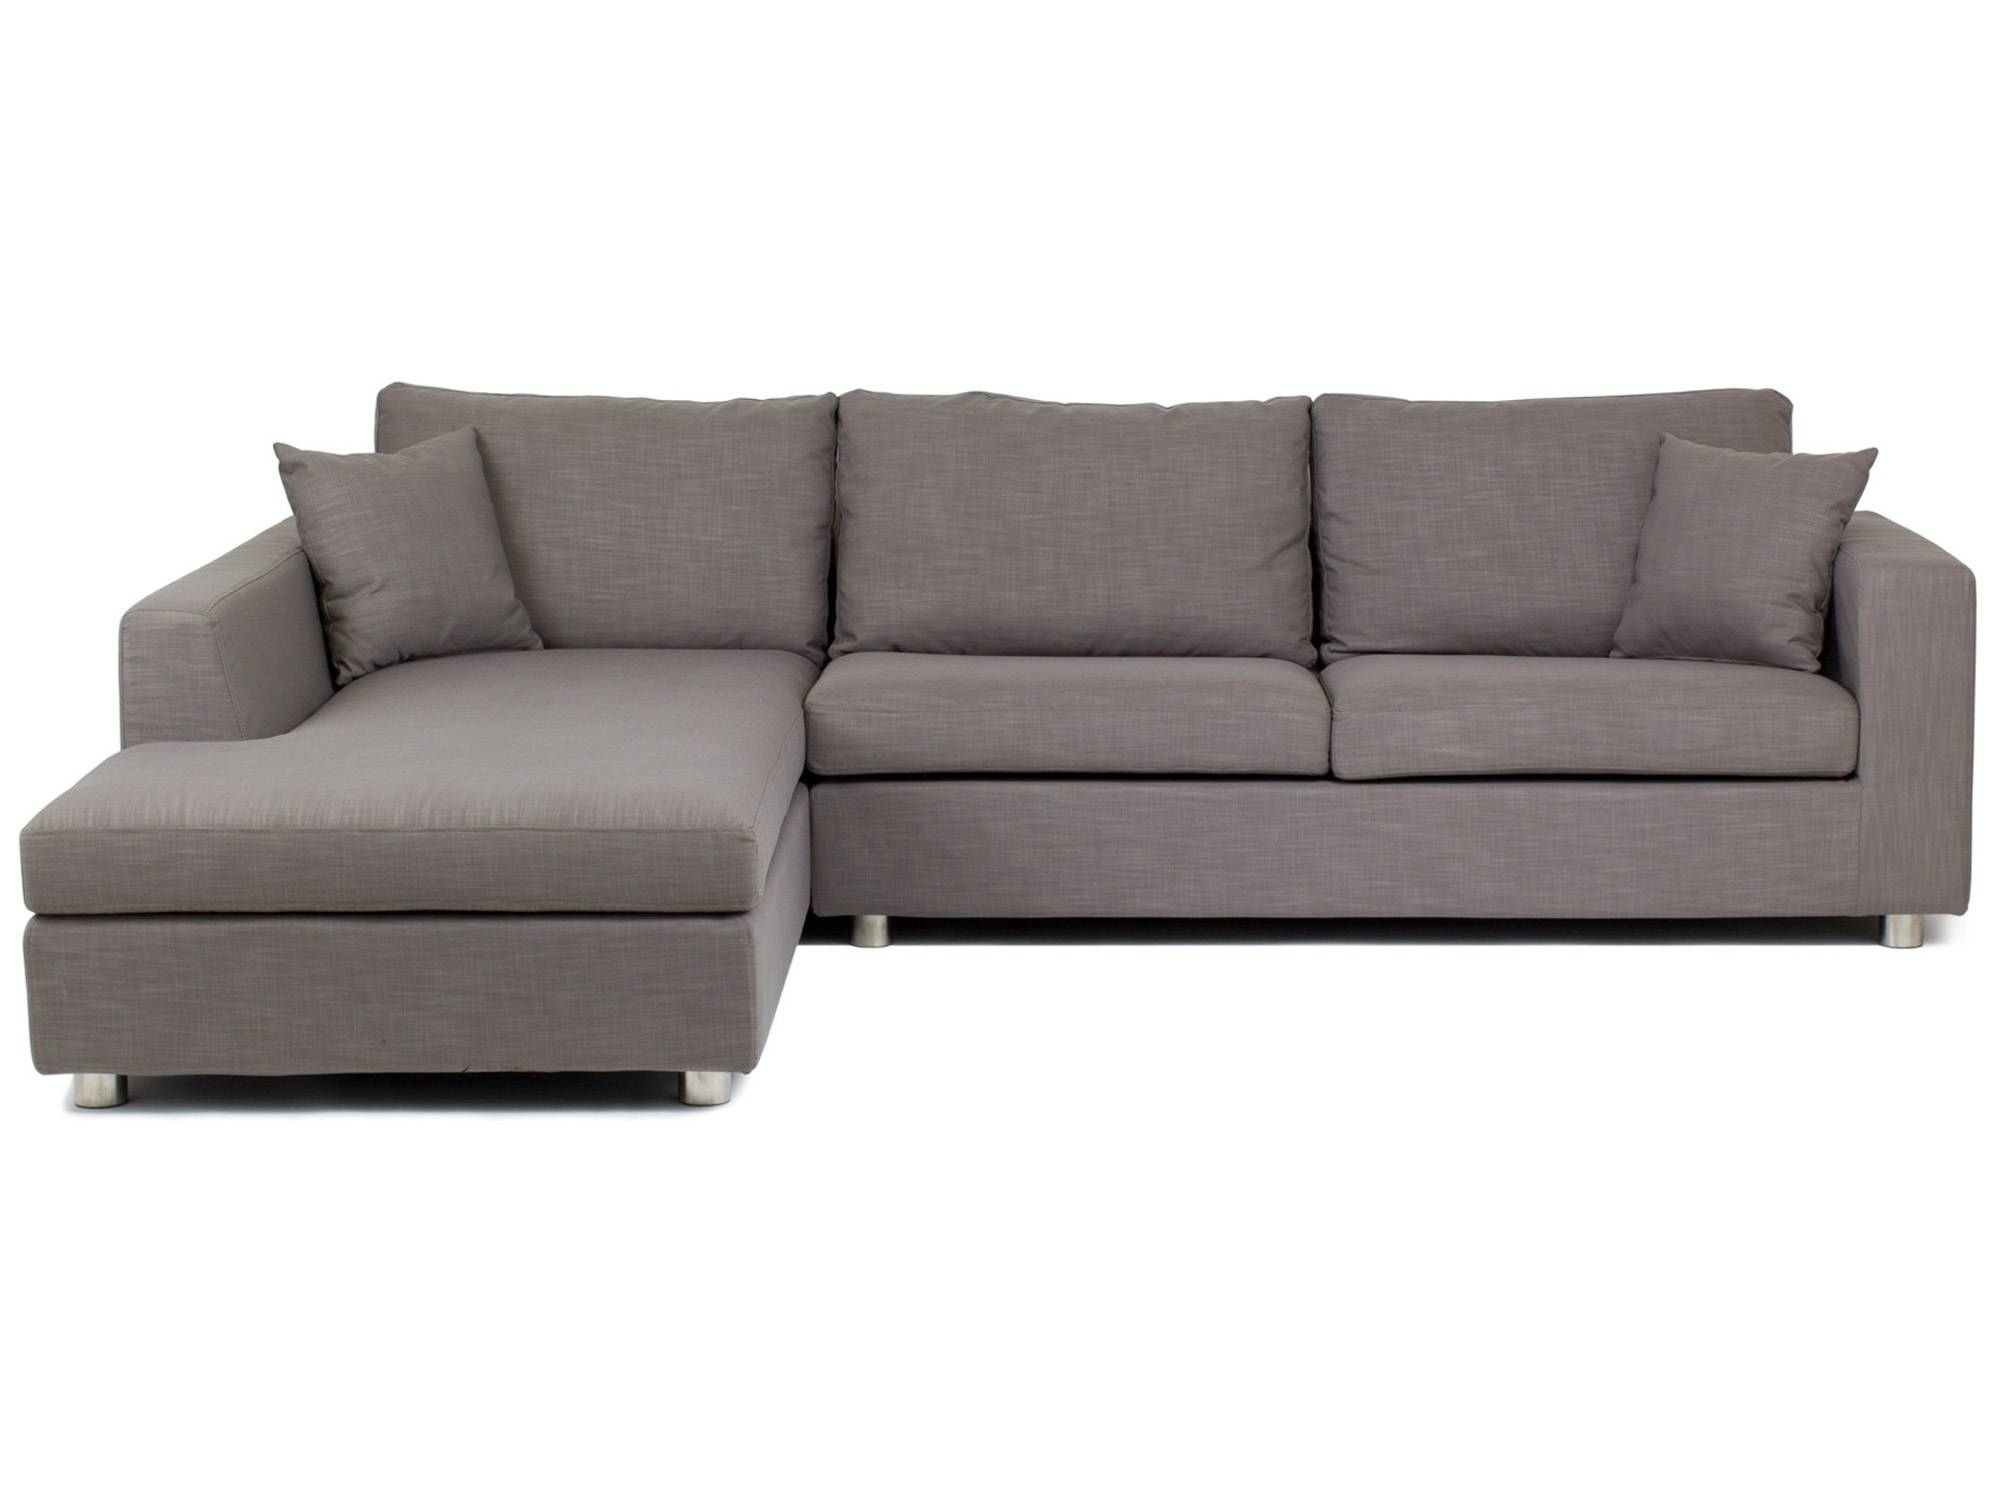 Sofas Center : Corner Sofa Beds Uk Cheap Birminghamcorner For for Cheap Corner Sofas (Image 24 of 30)